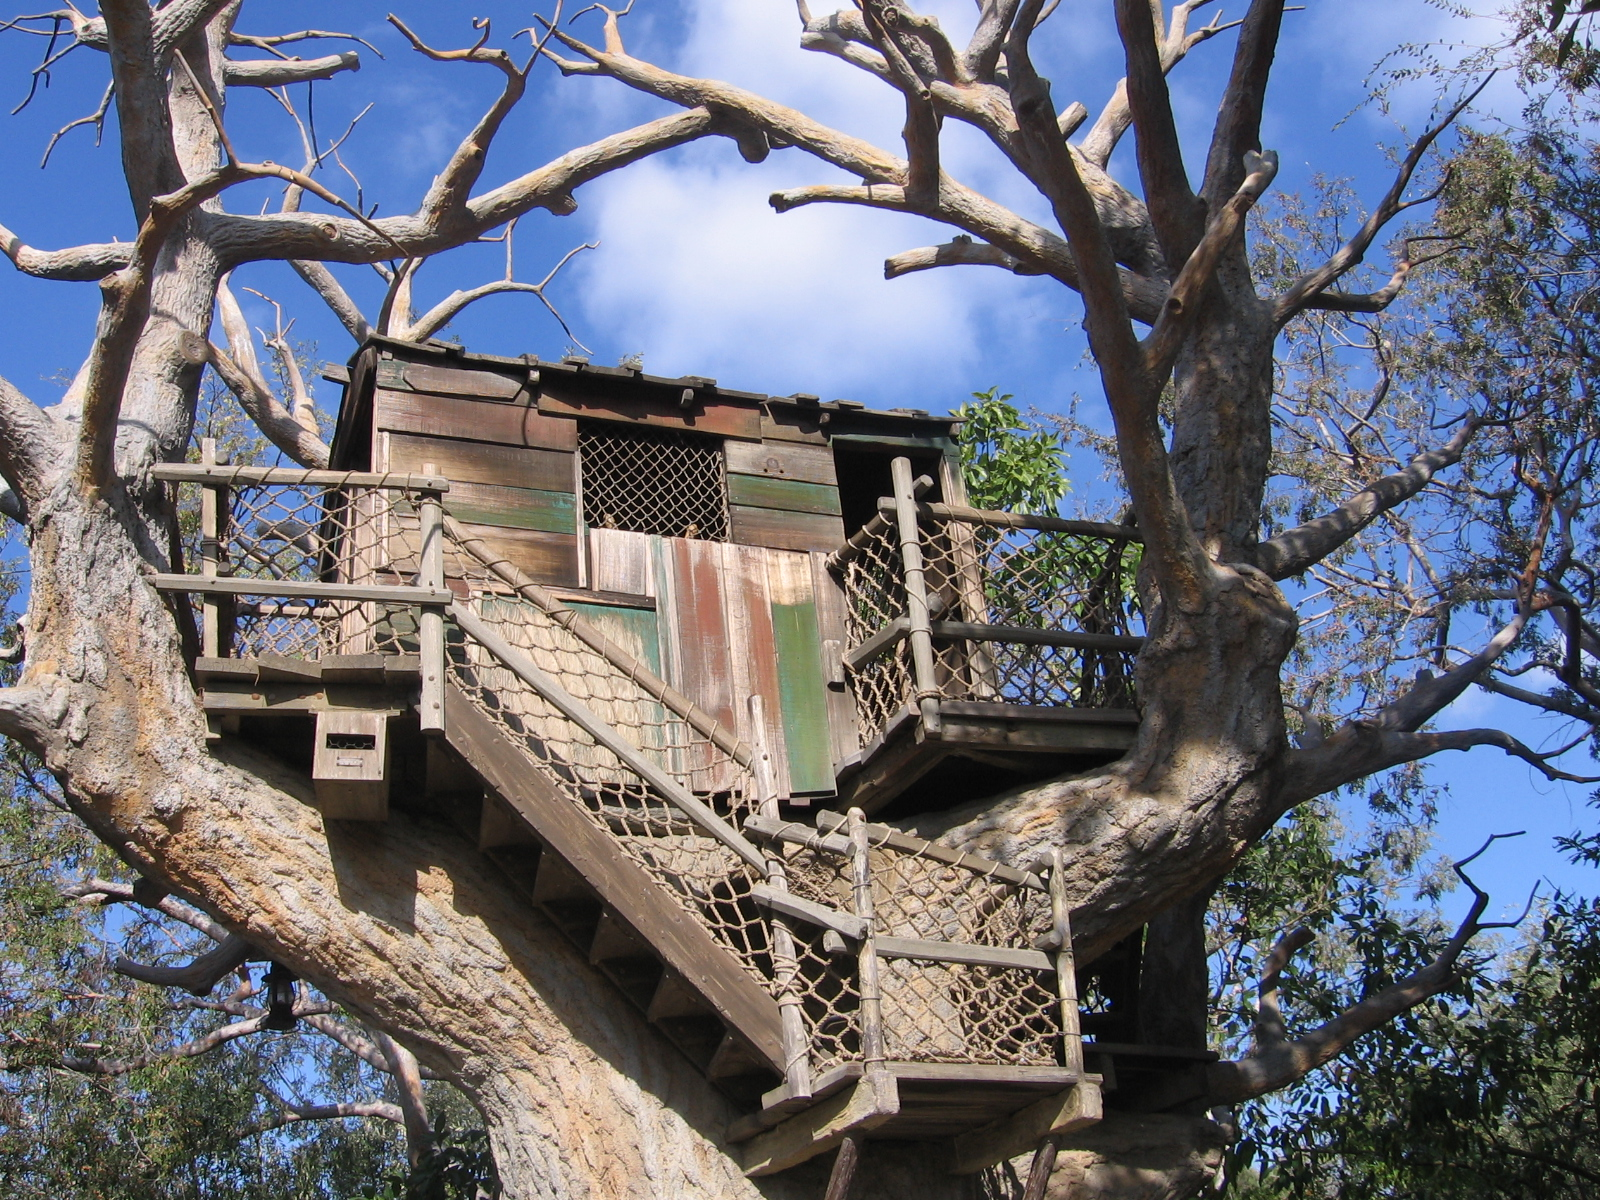 Top 20 beautiful and amazing tree house wallpapers pics for Best house wallpaper